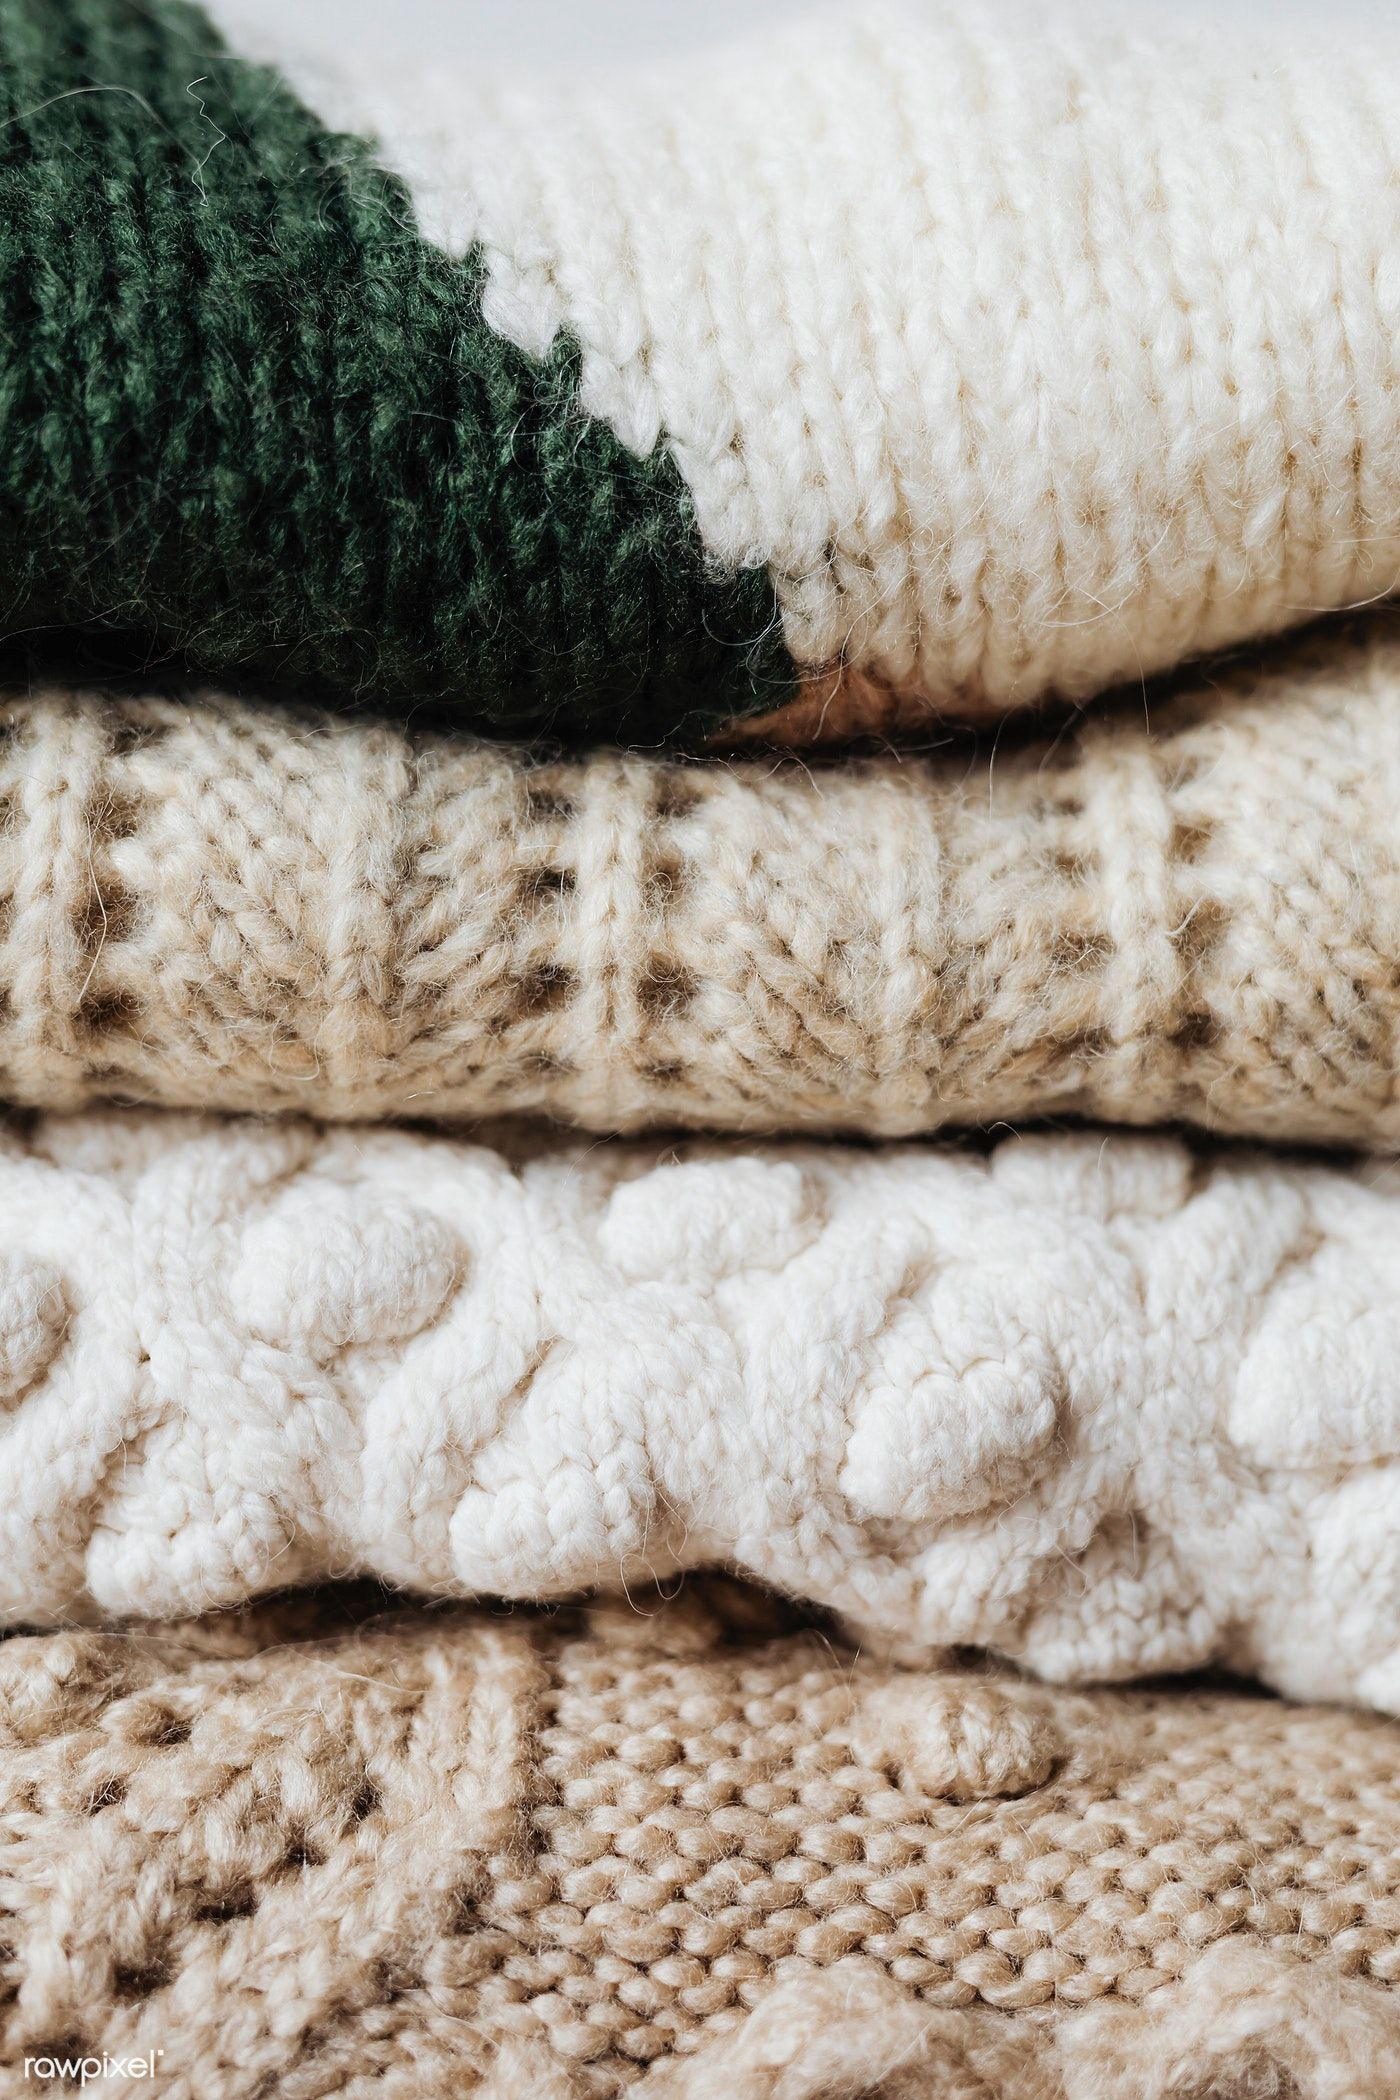 Folded winter sweaters close up free image by rawpixel